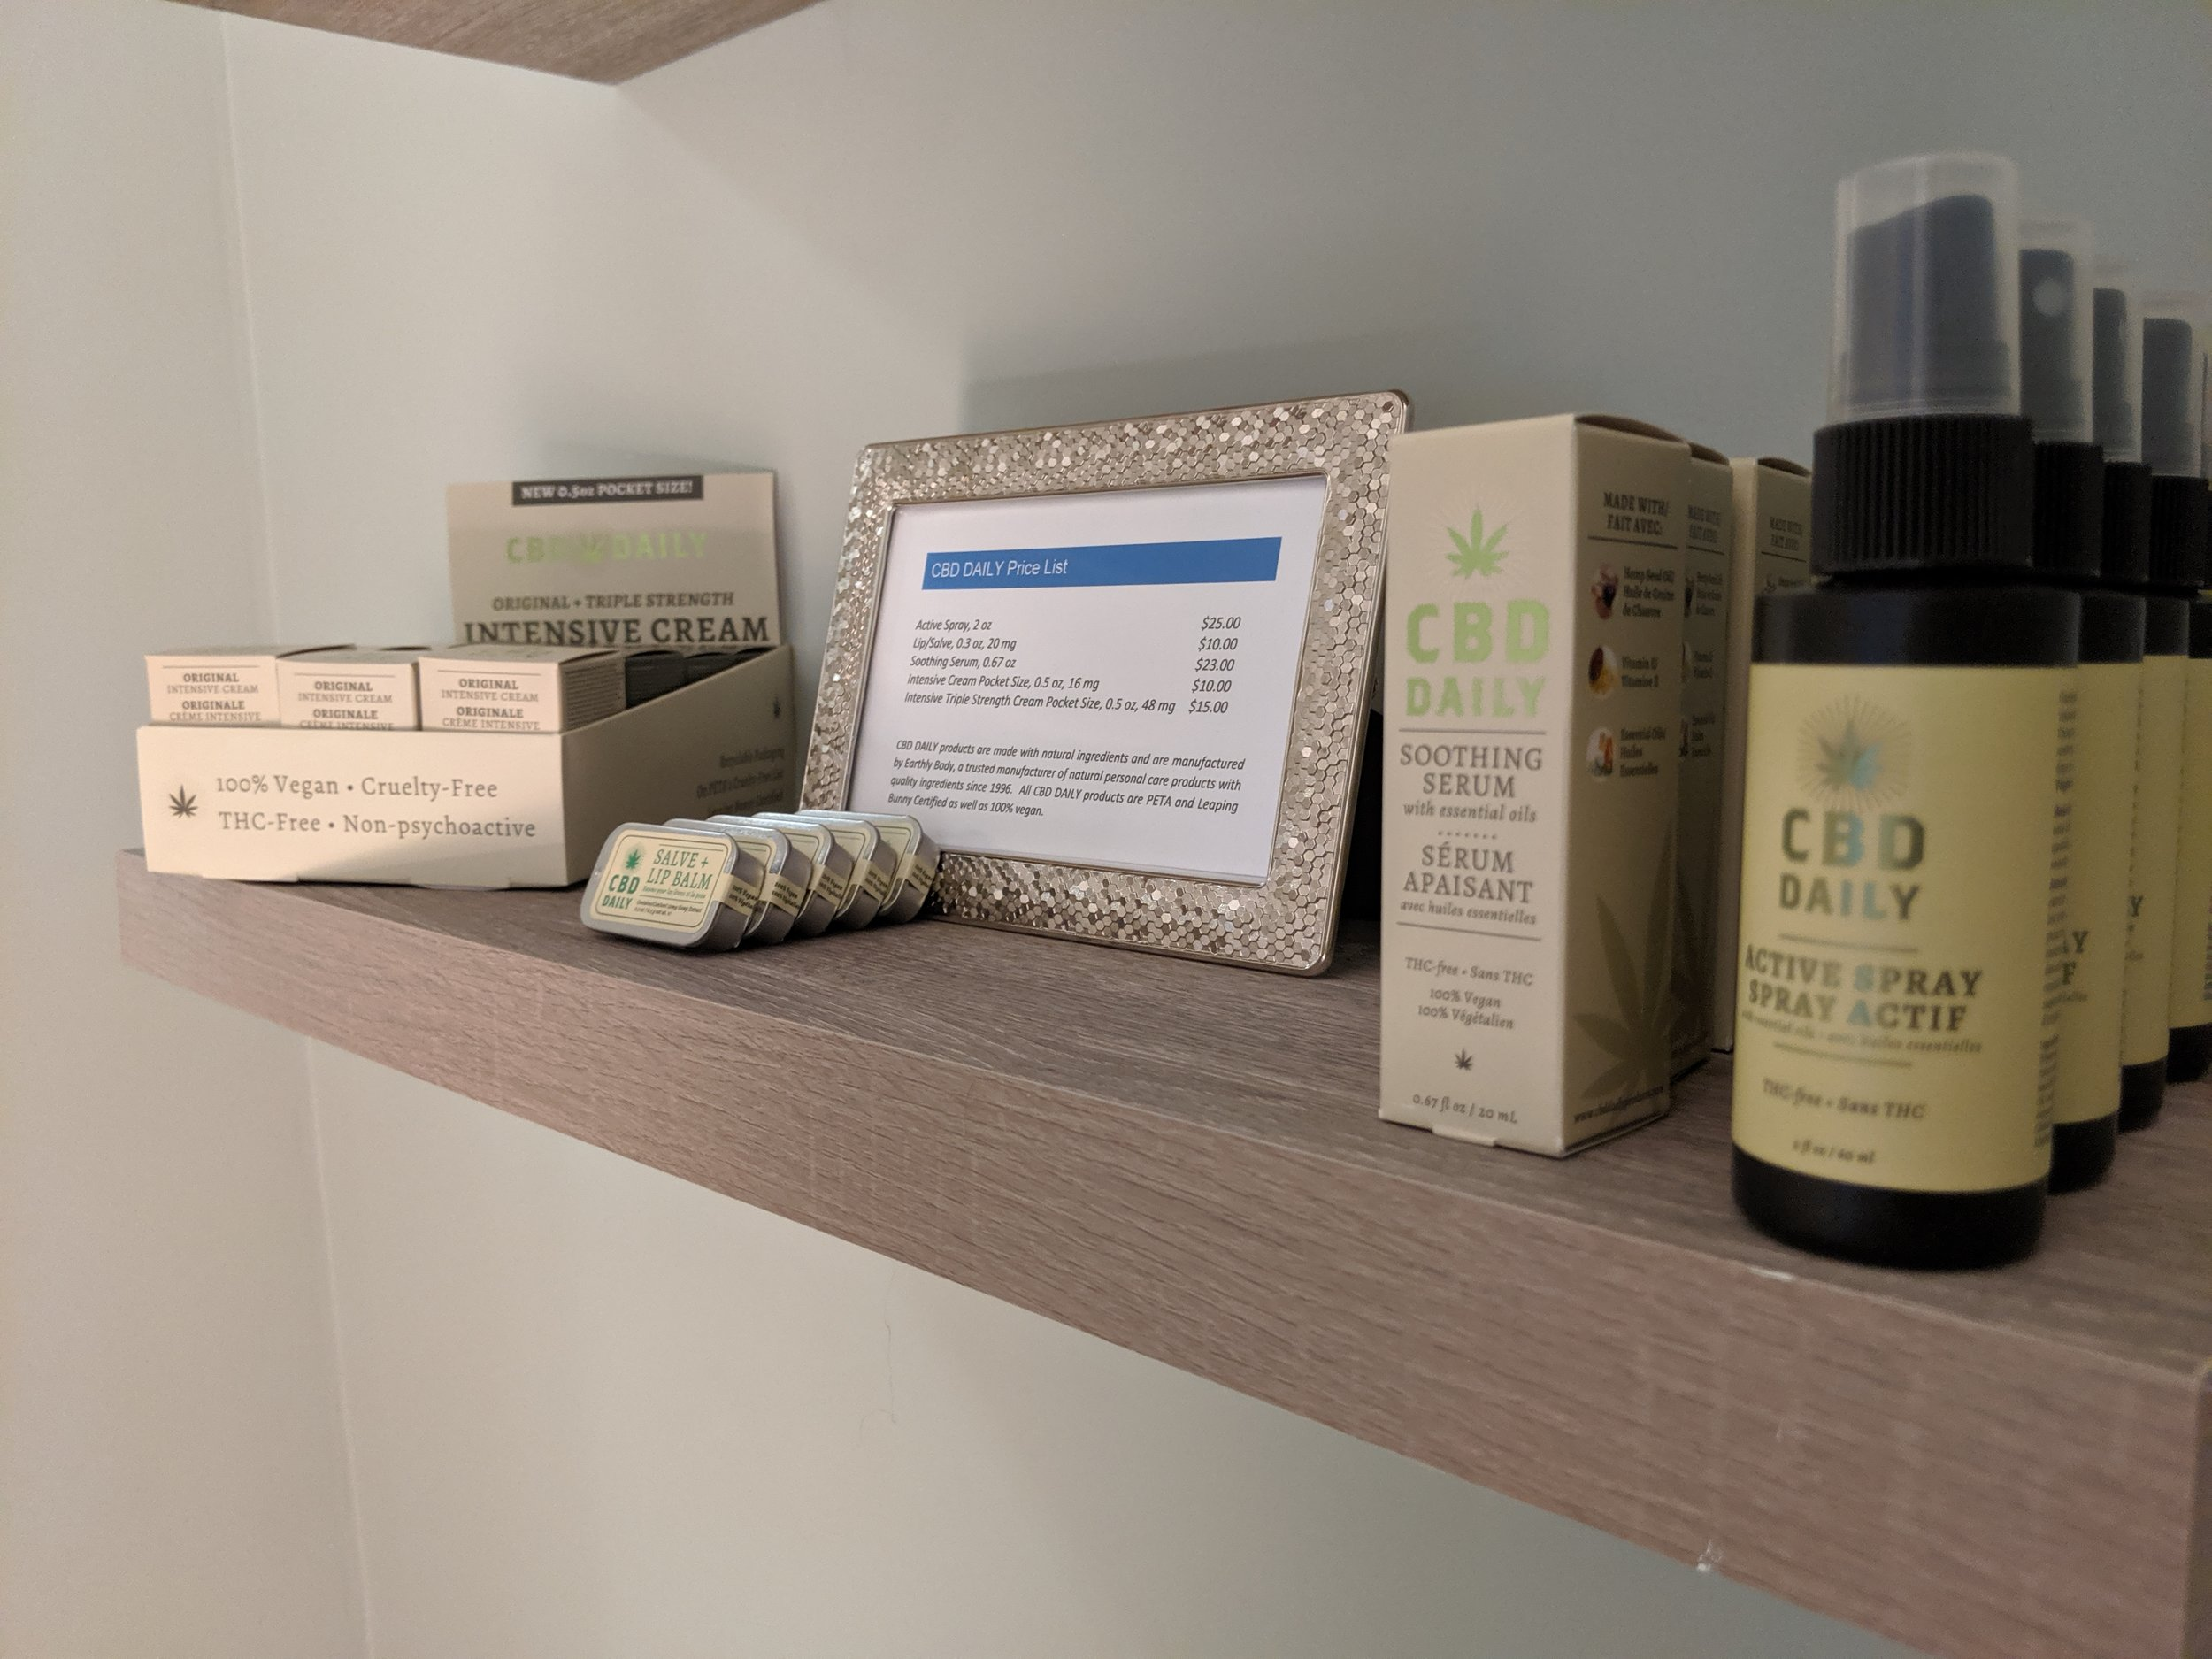 CBD Daily Products - available for purchase